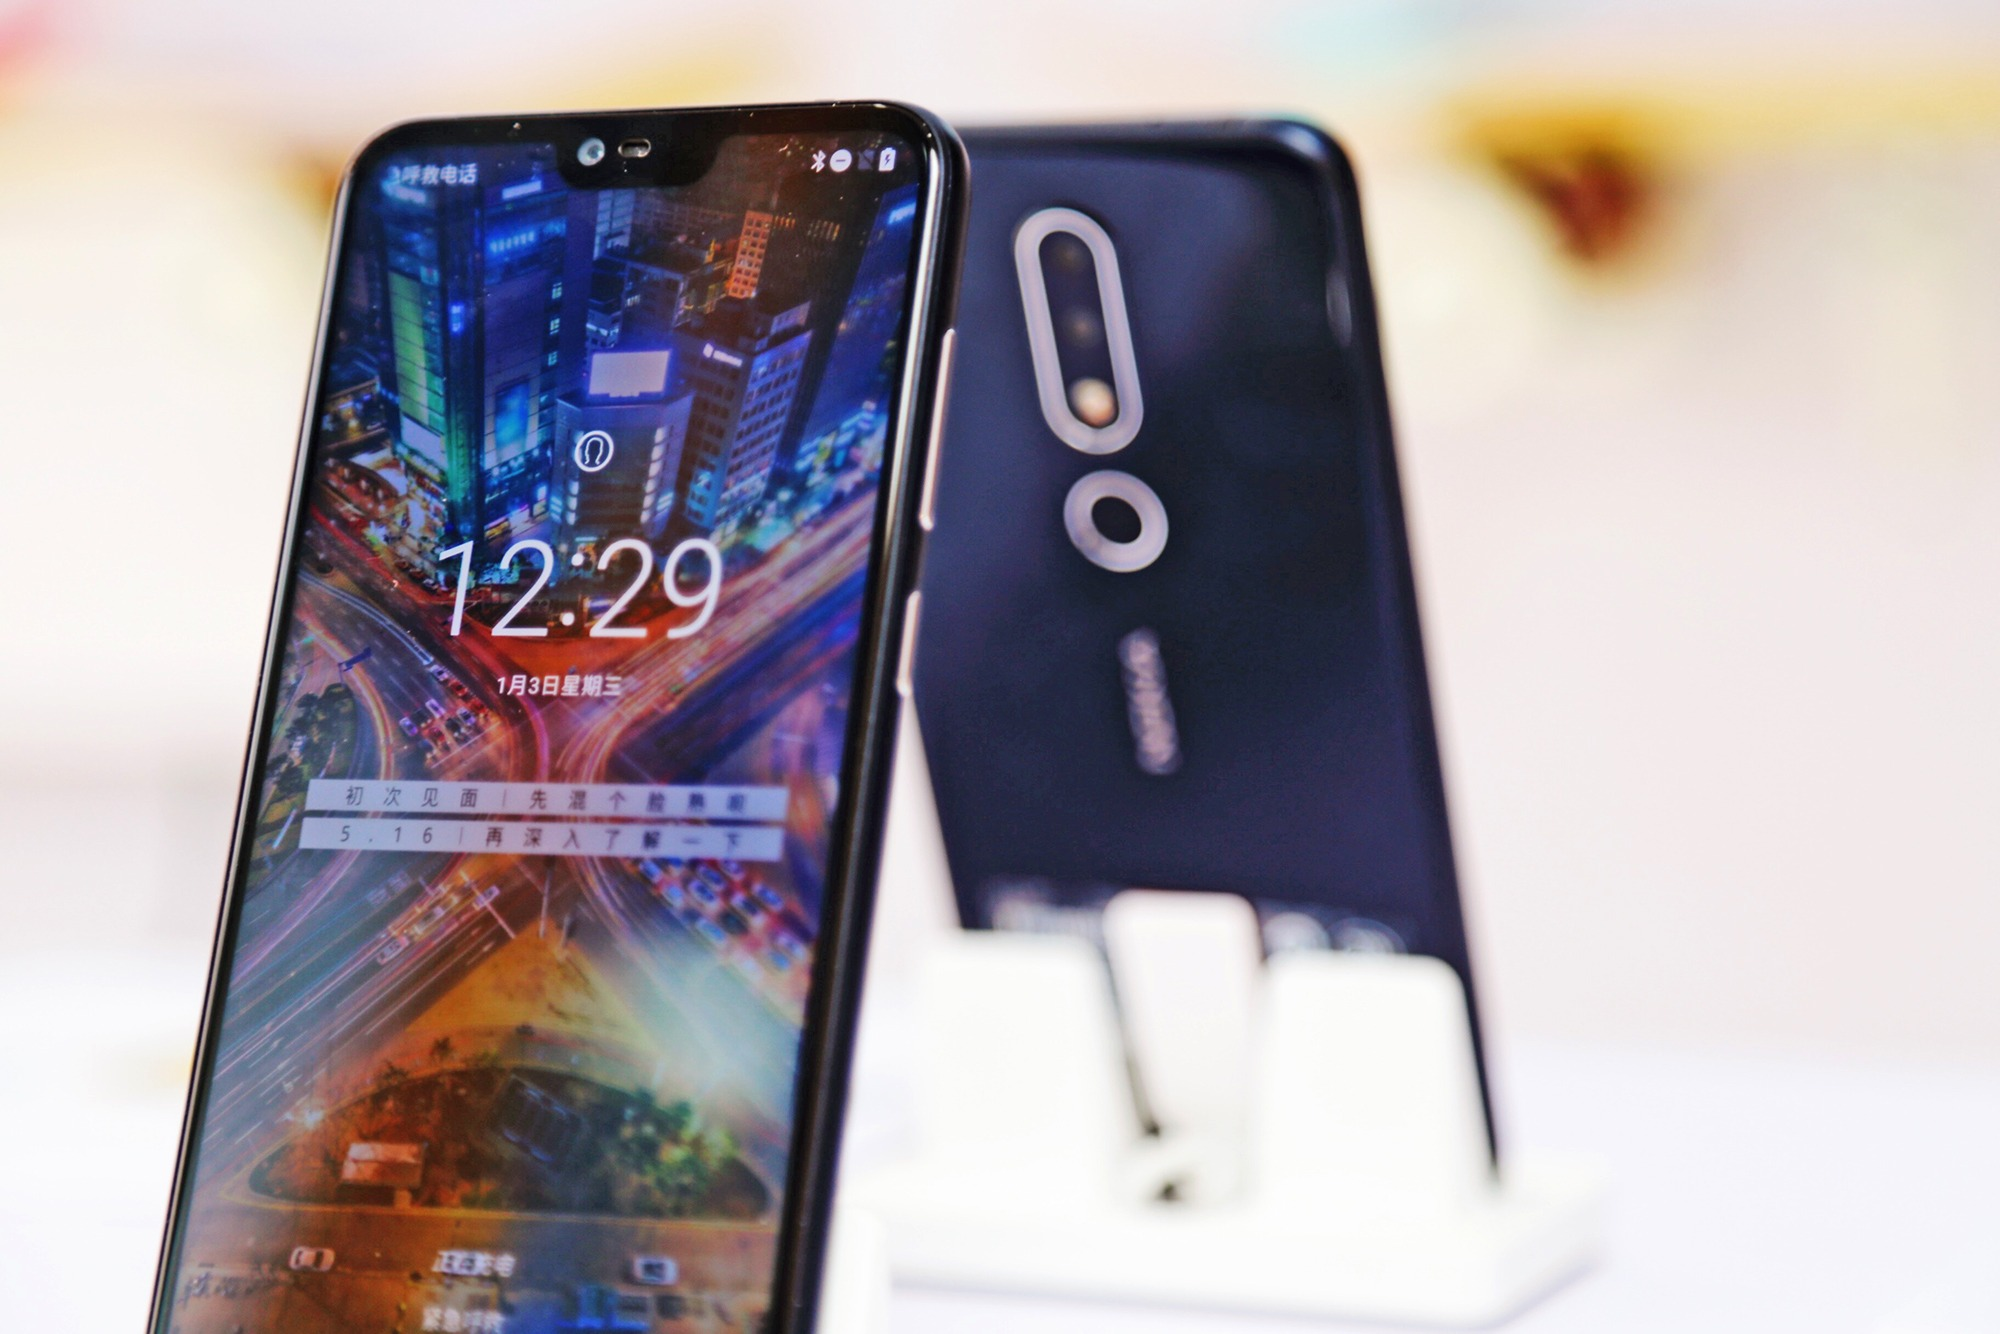 Nokia X6 live images are here - Check out that notch design 1